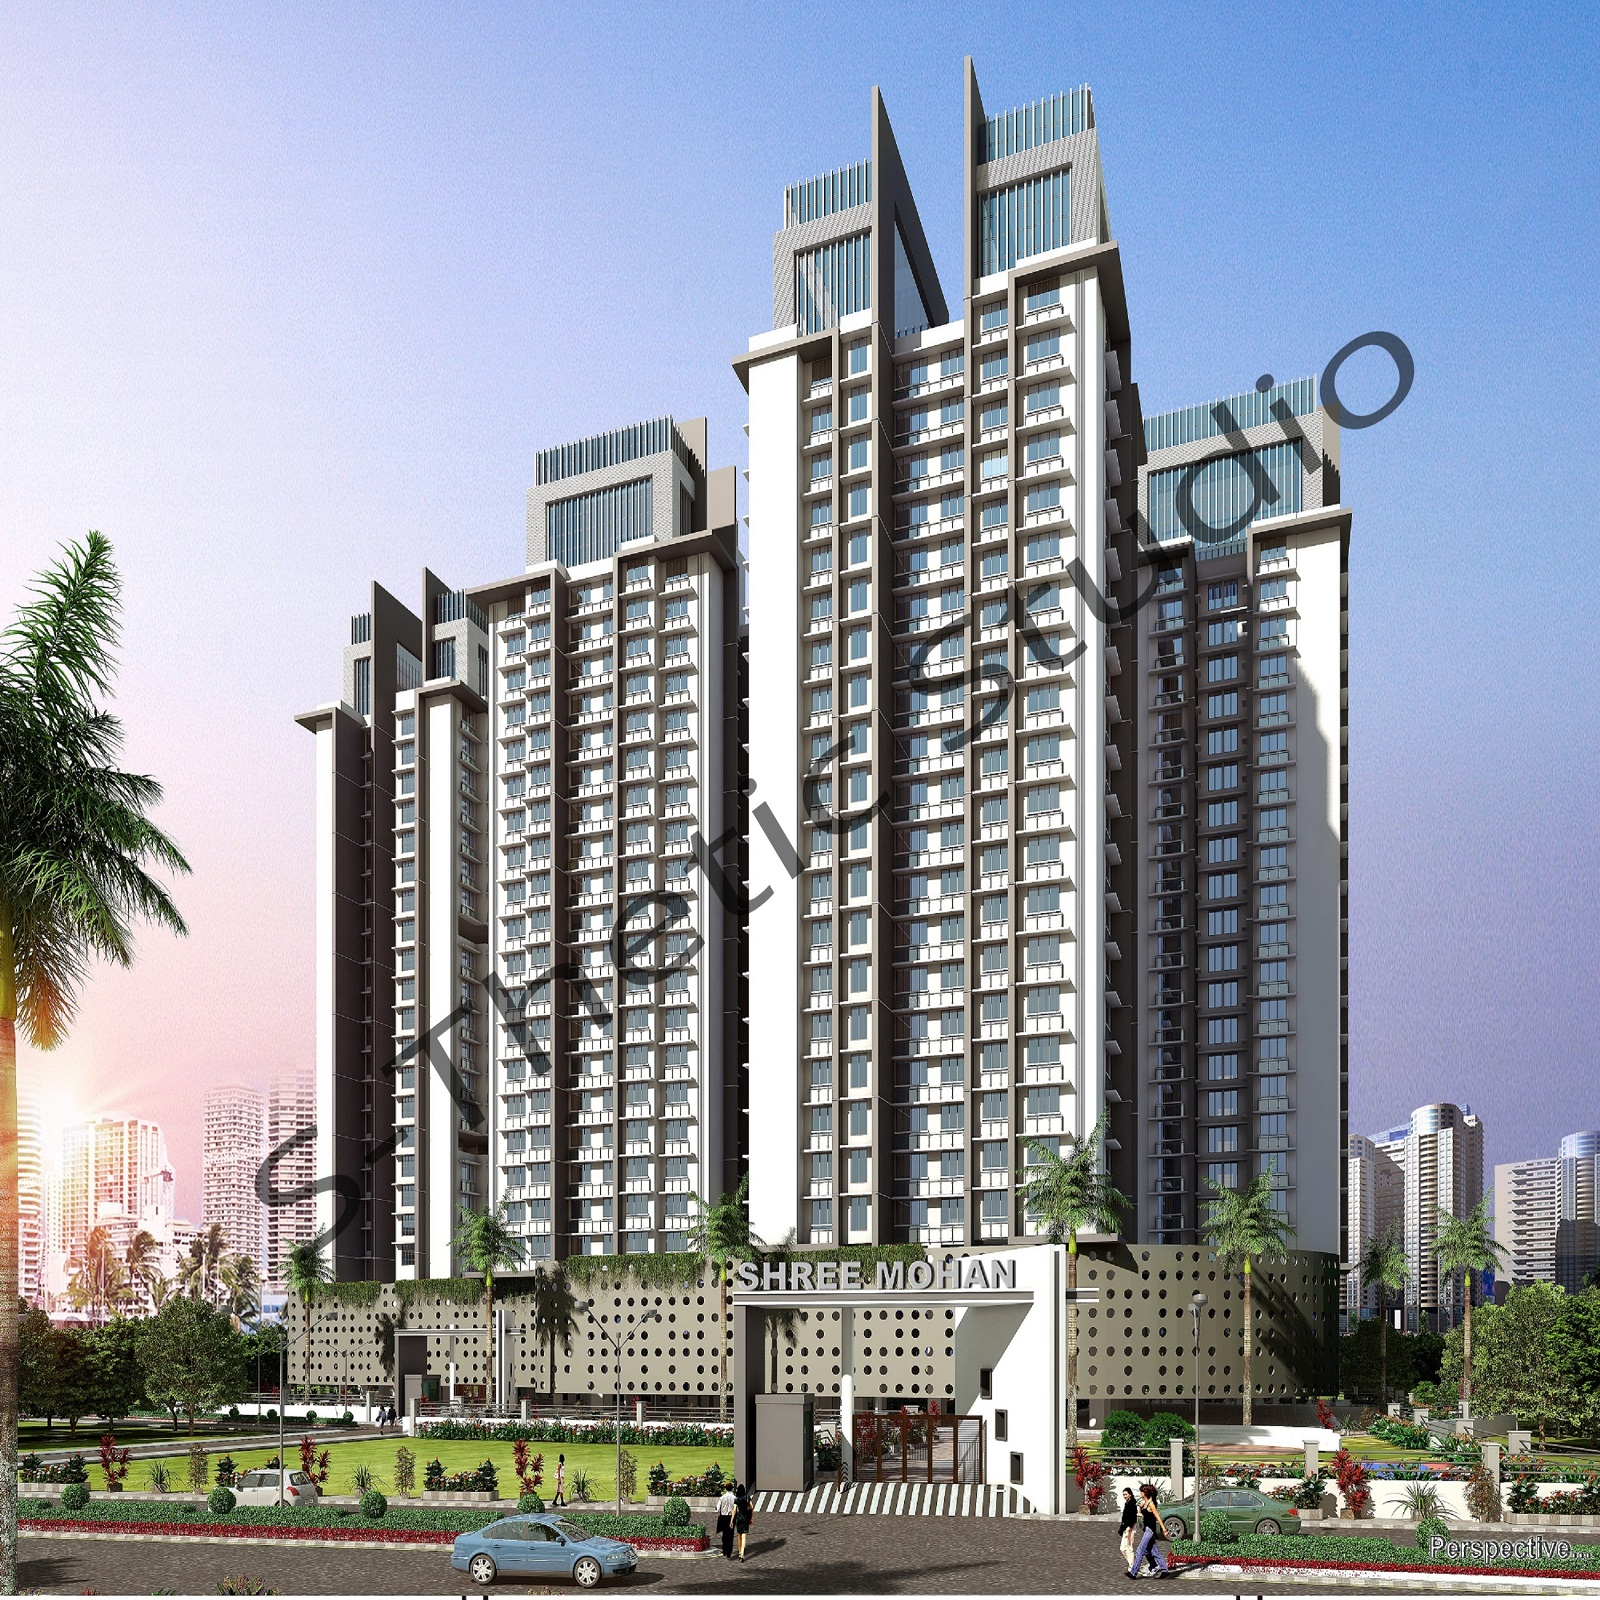 Town planning in mira road